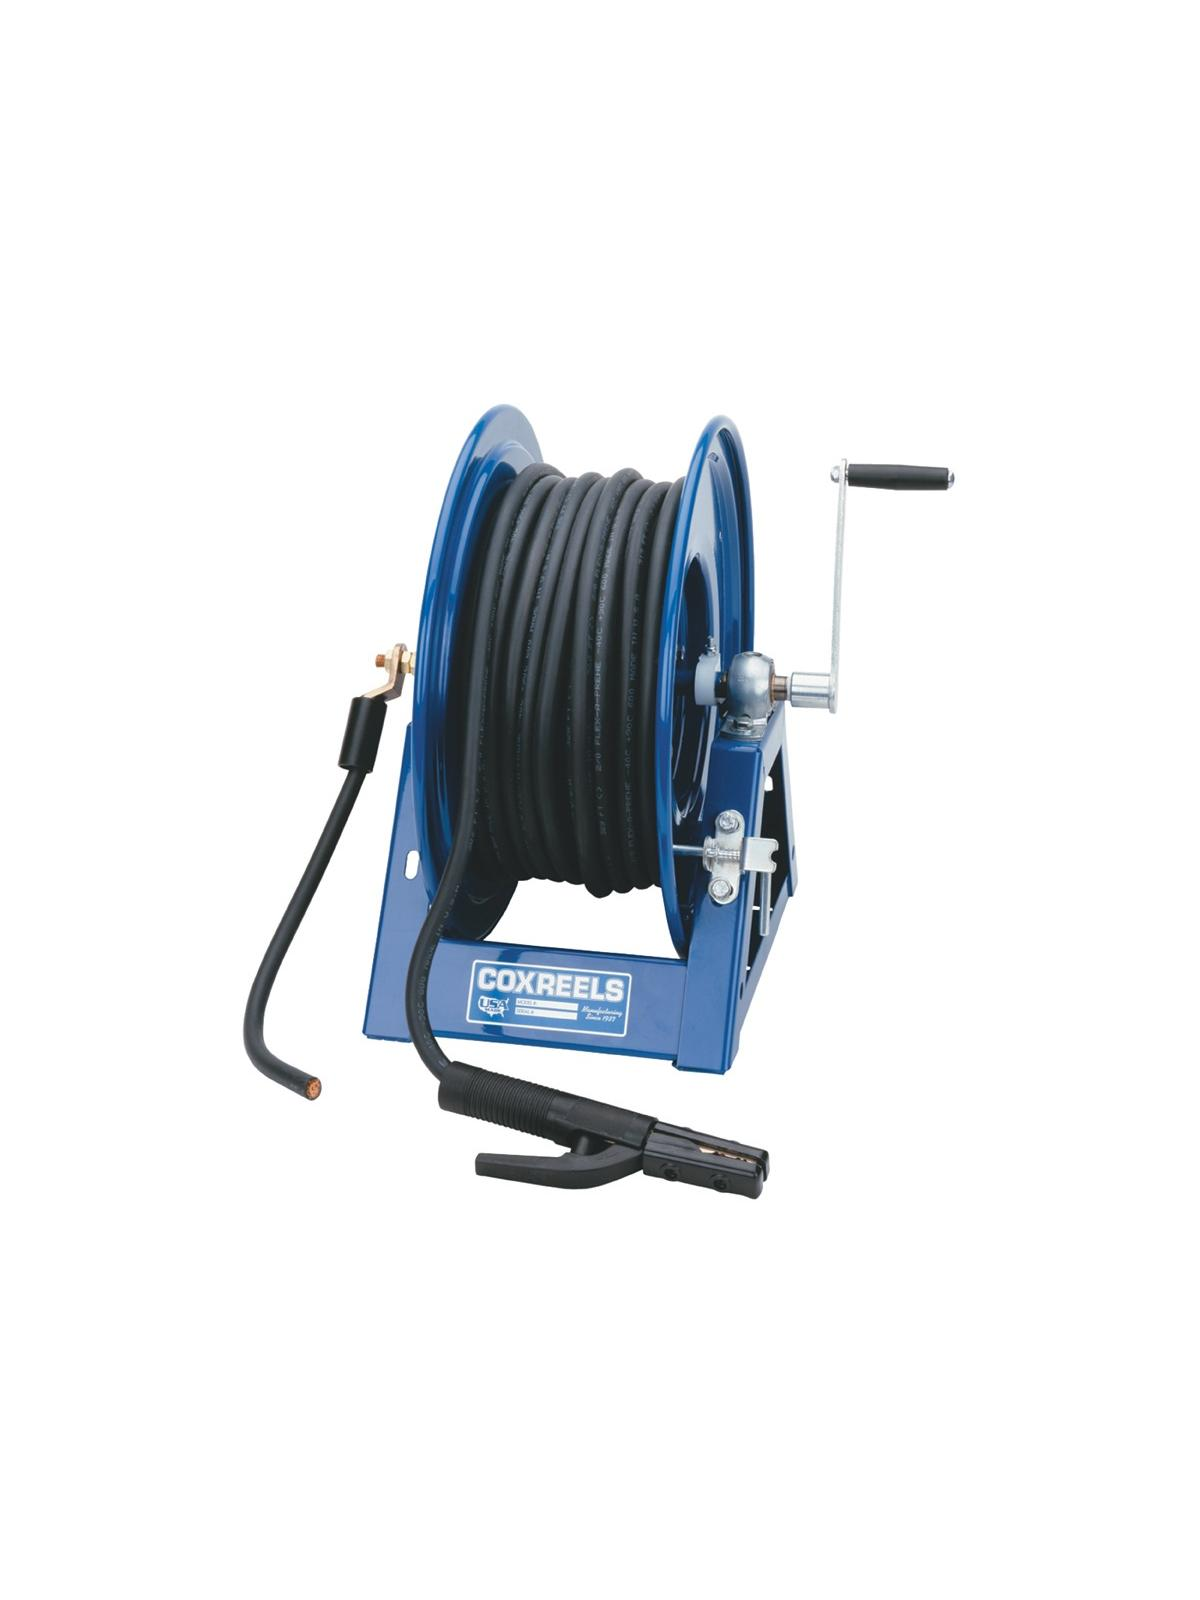 Hand Crank Welding Cable Reels | Fresno Rack & Shelving Co.